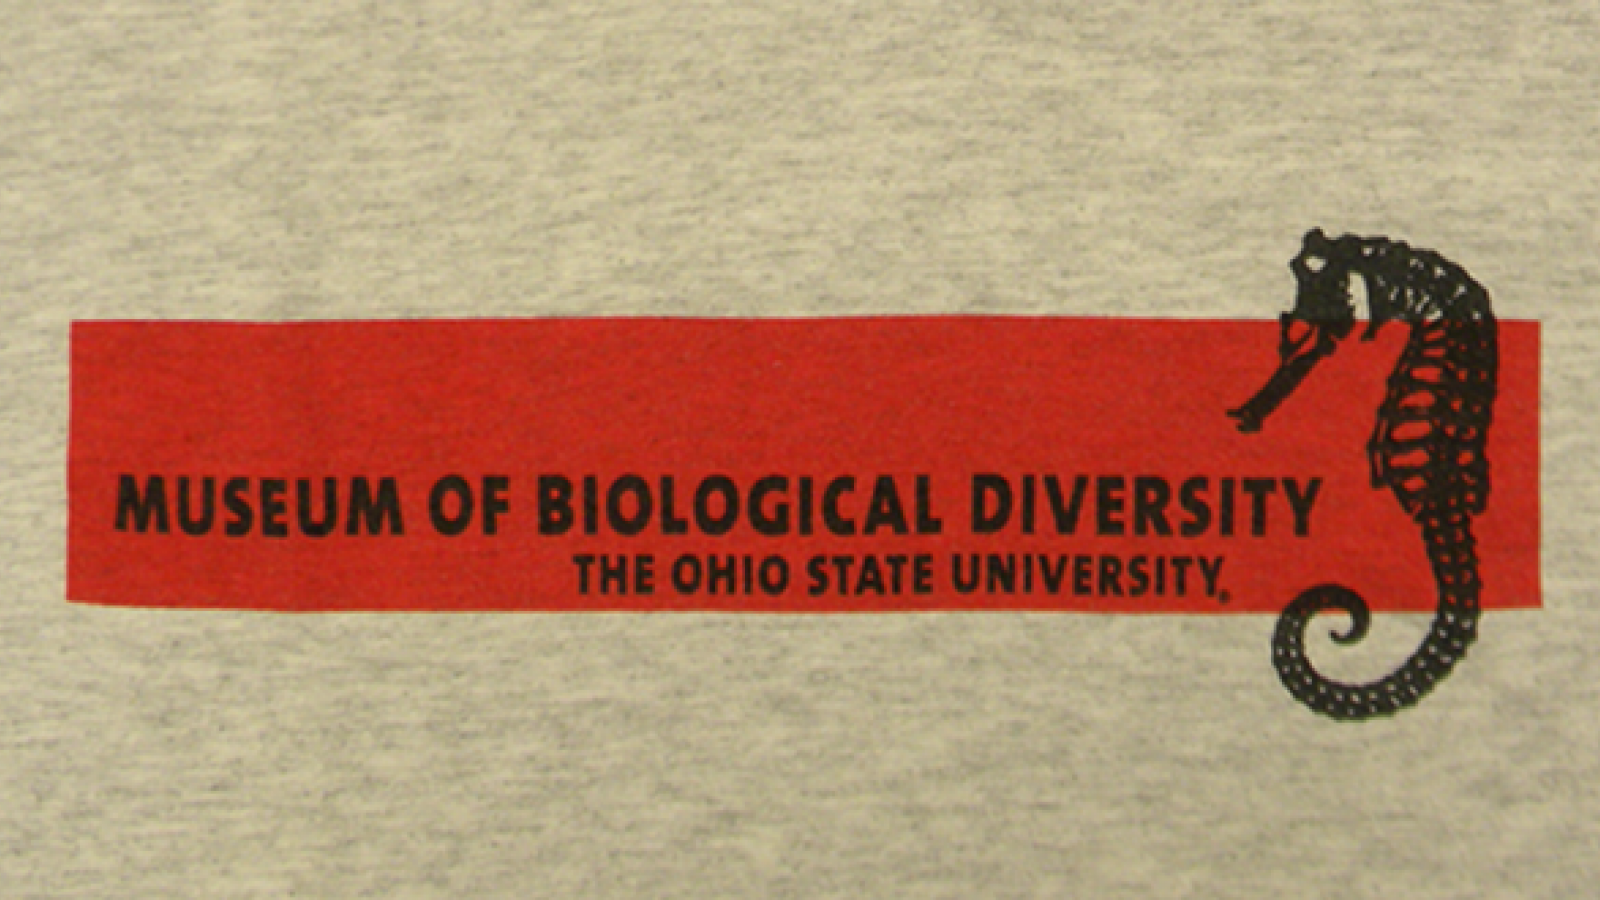 First year of the t-shirt